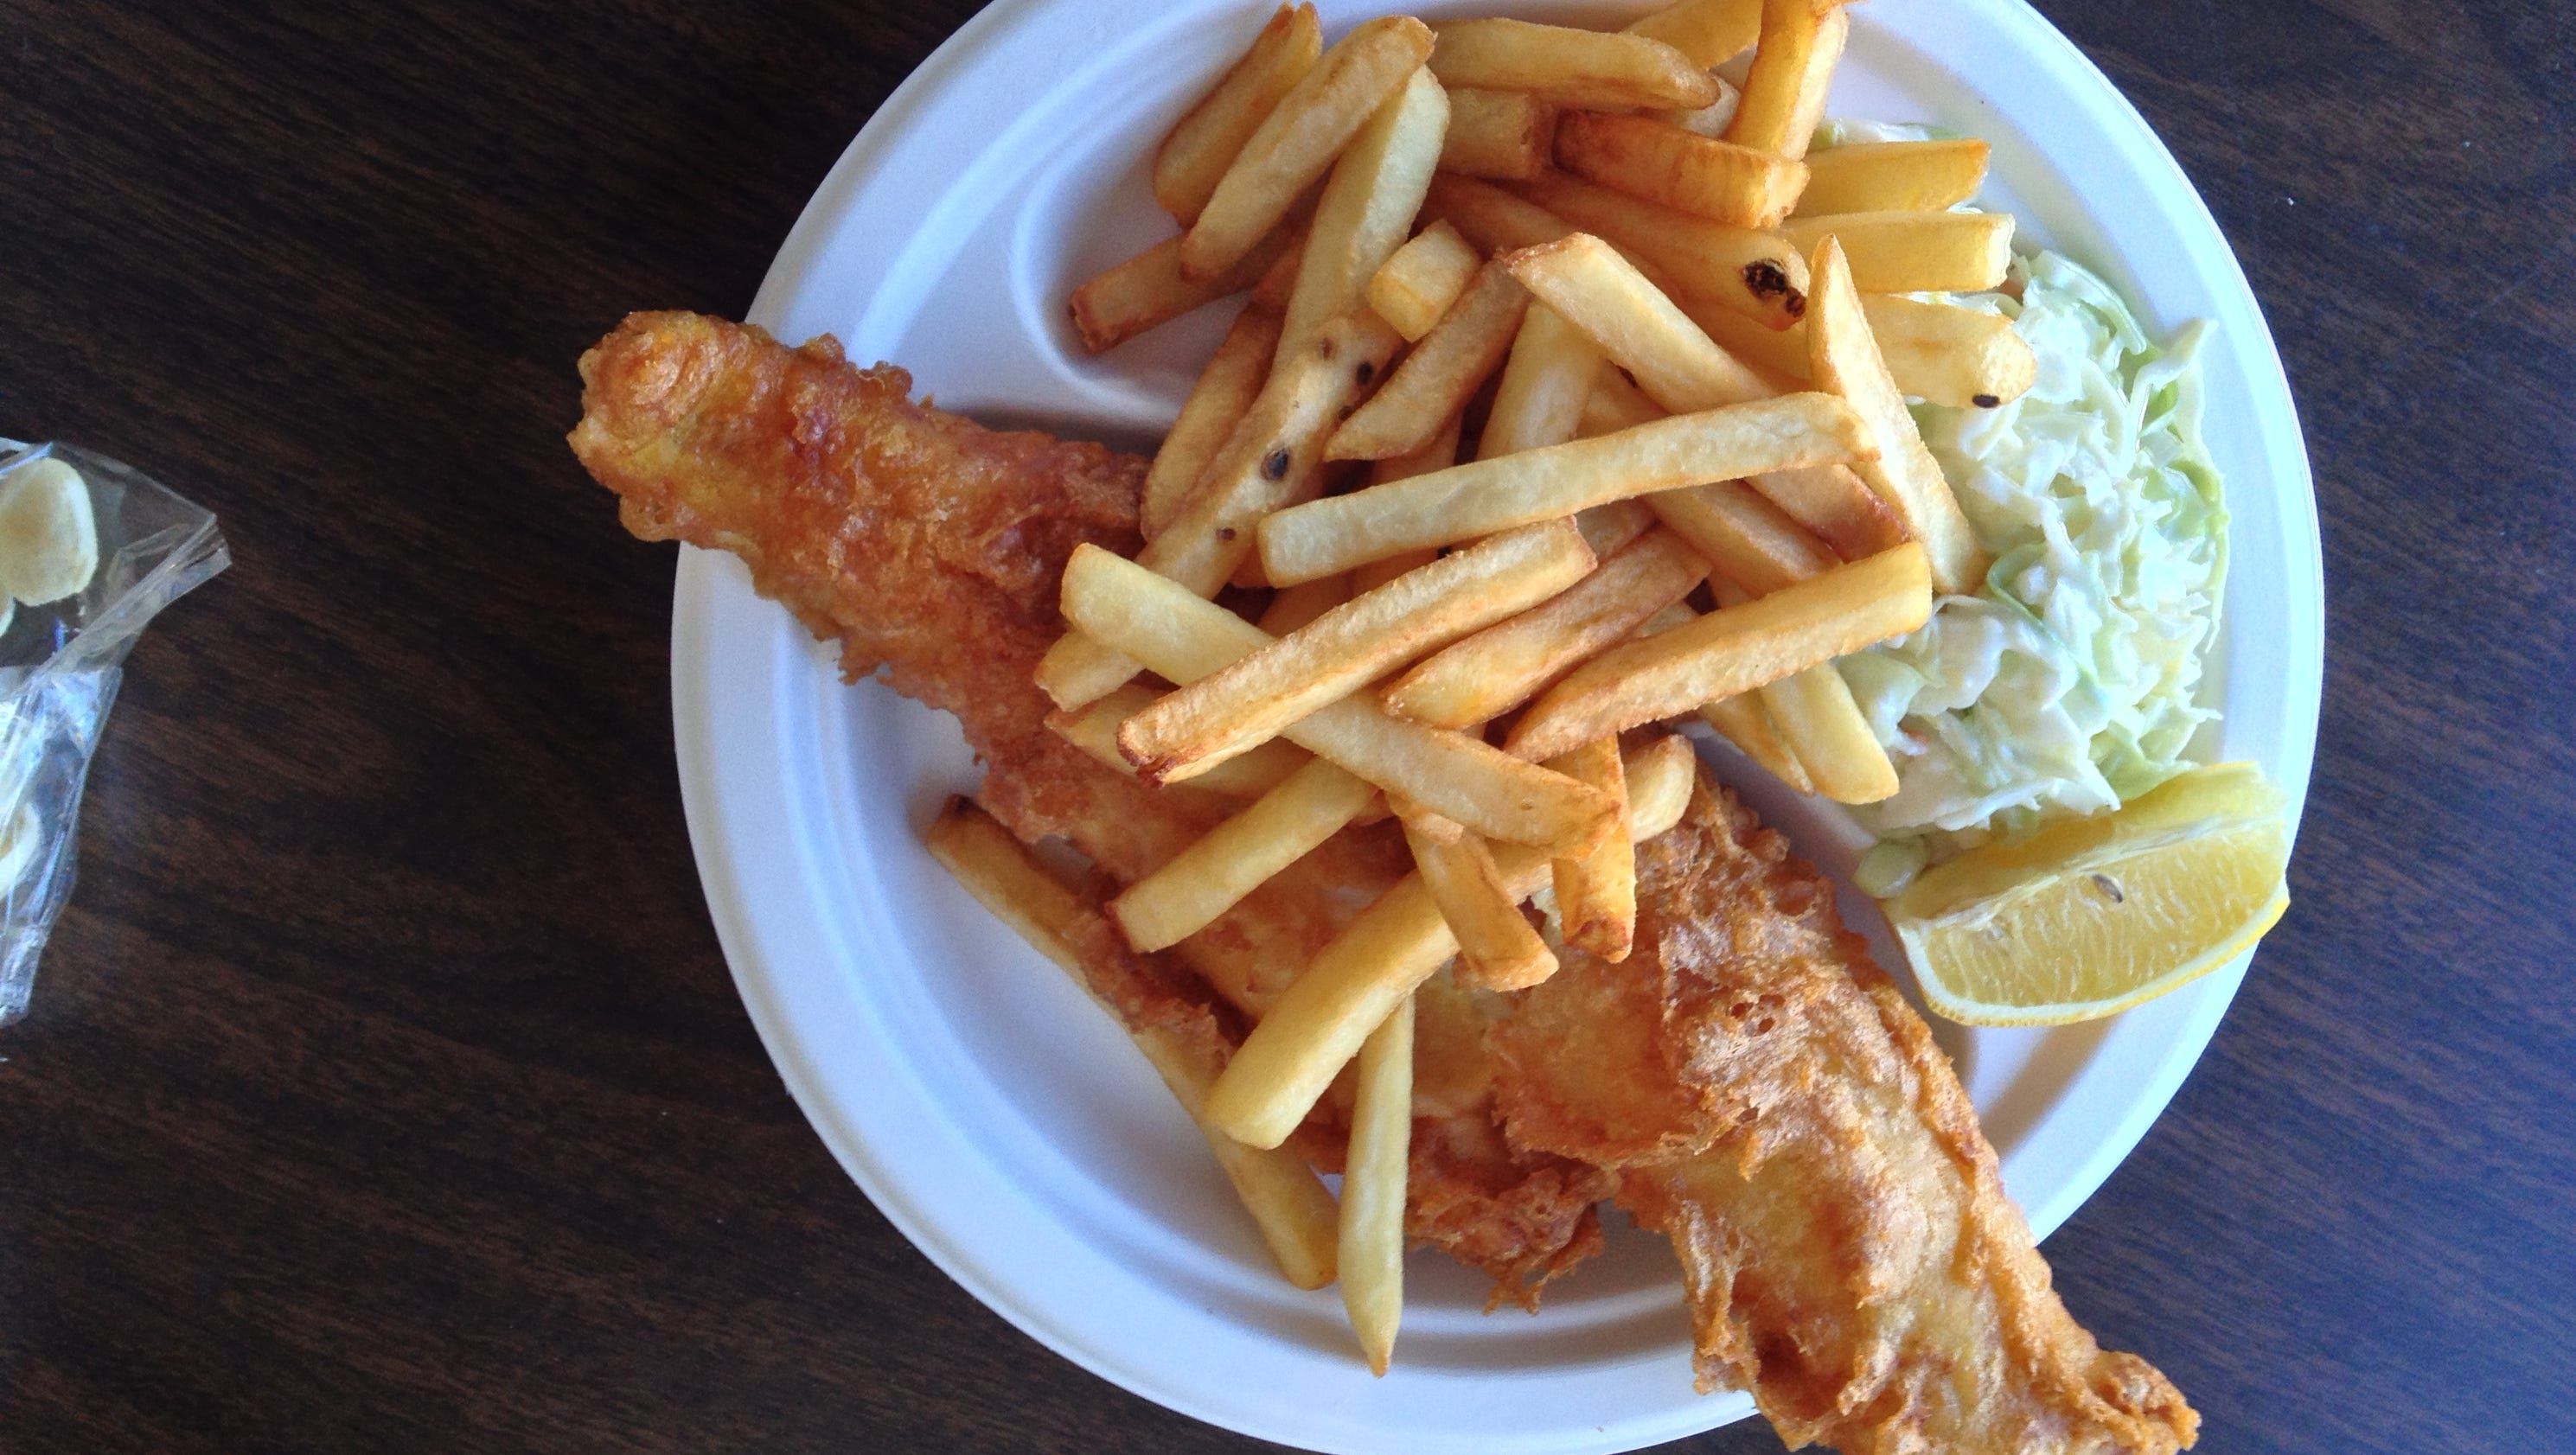 Cheap eats captain jim s fish fry is tried and true for Cliffords fish fry